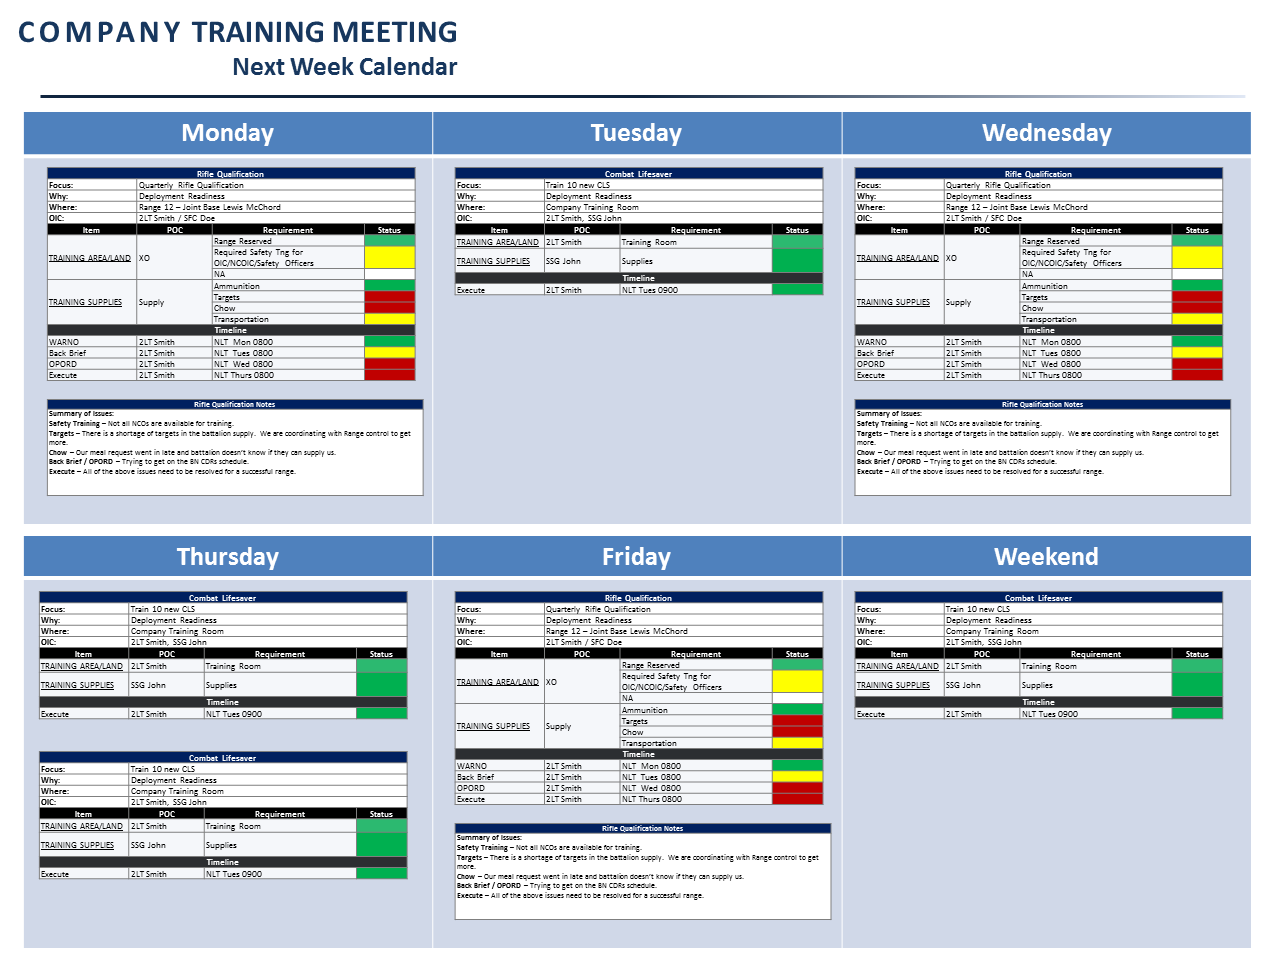 military recall roster template - a company training meeting template modernpresenter